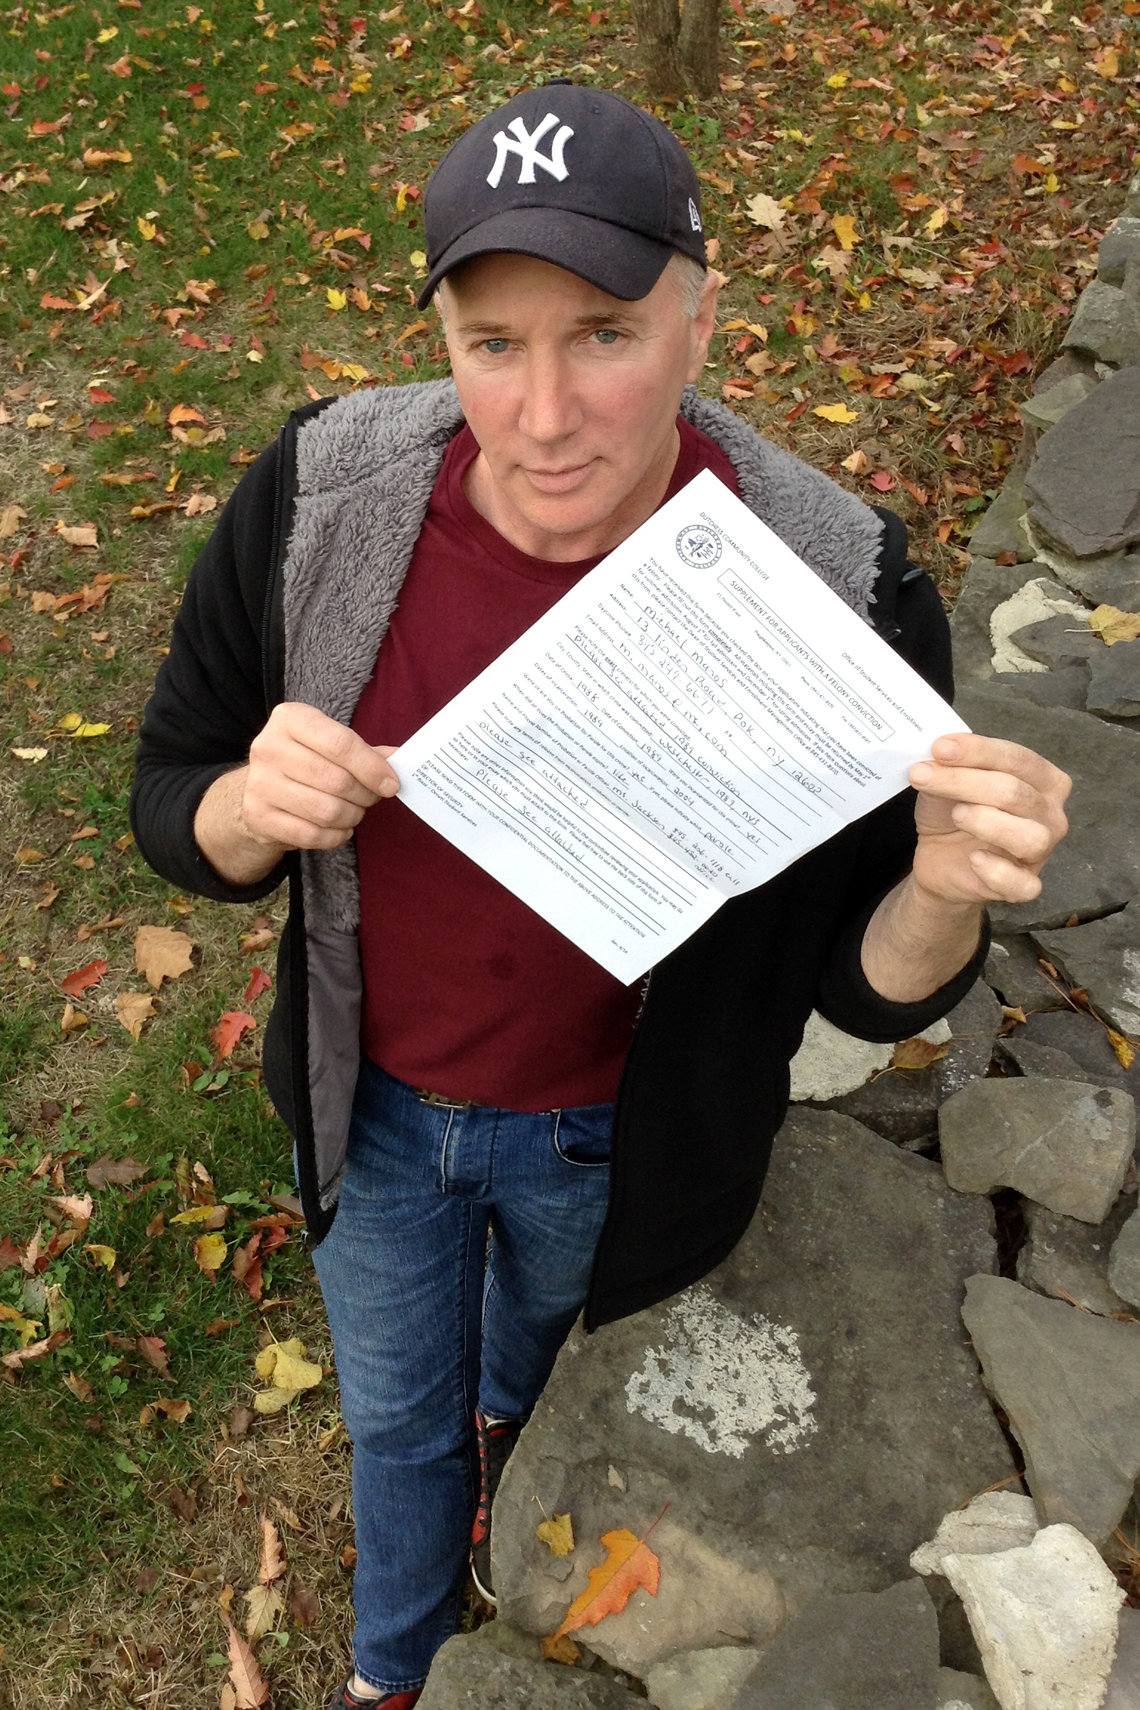 Michael Manos, an ex-felon and first-semester student at Dutchess County Community College, with paperwork given to applicants with a criminal history.